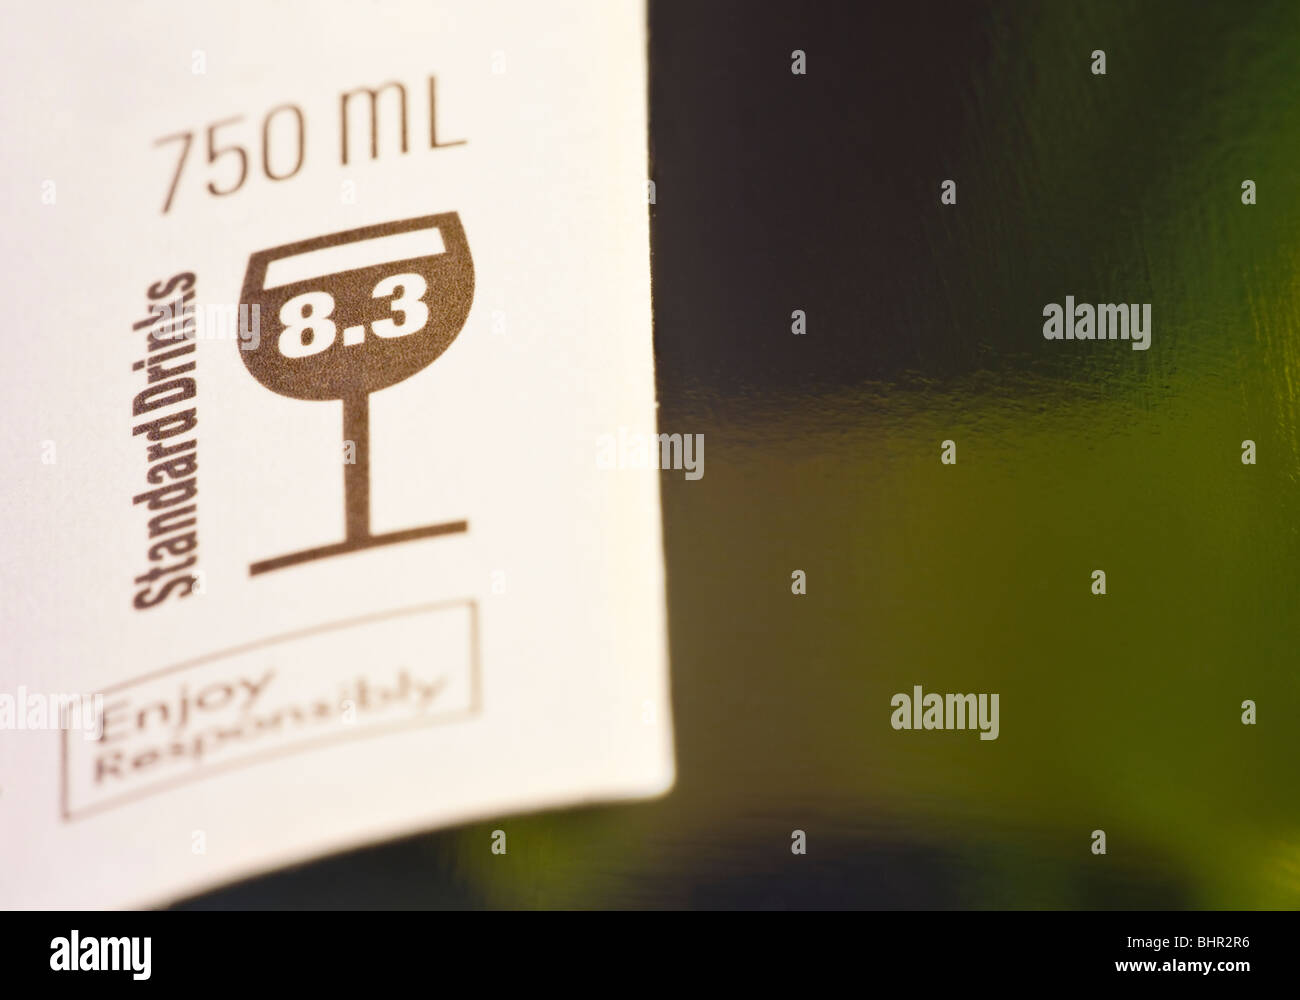 Standard Drinks Alchohol Units Label on a wine bottle - Stock Image